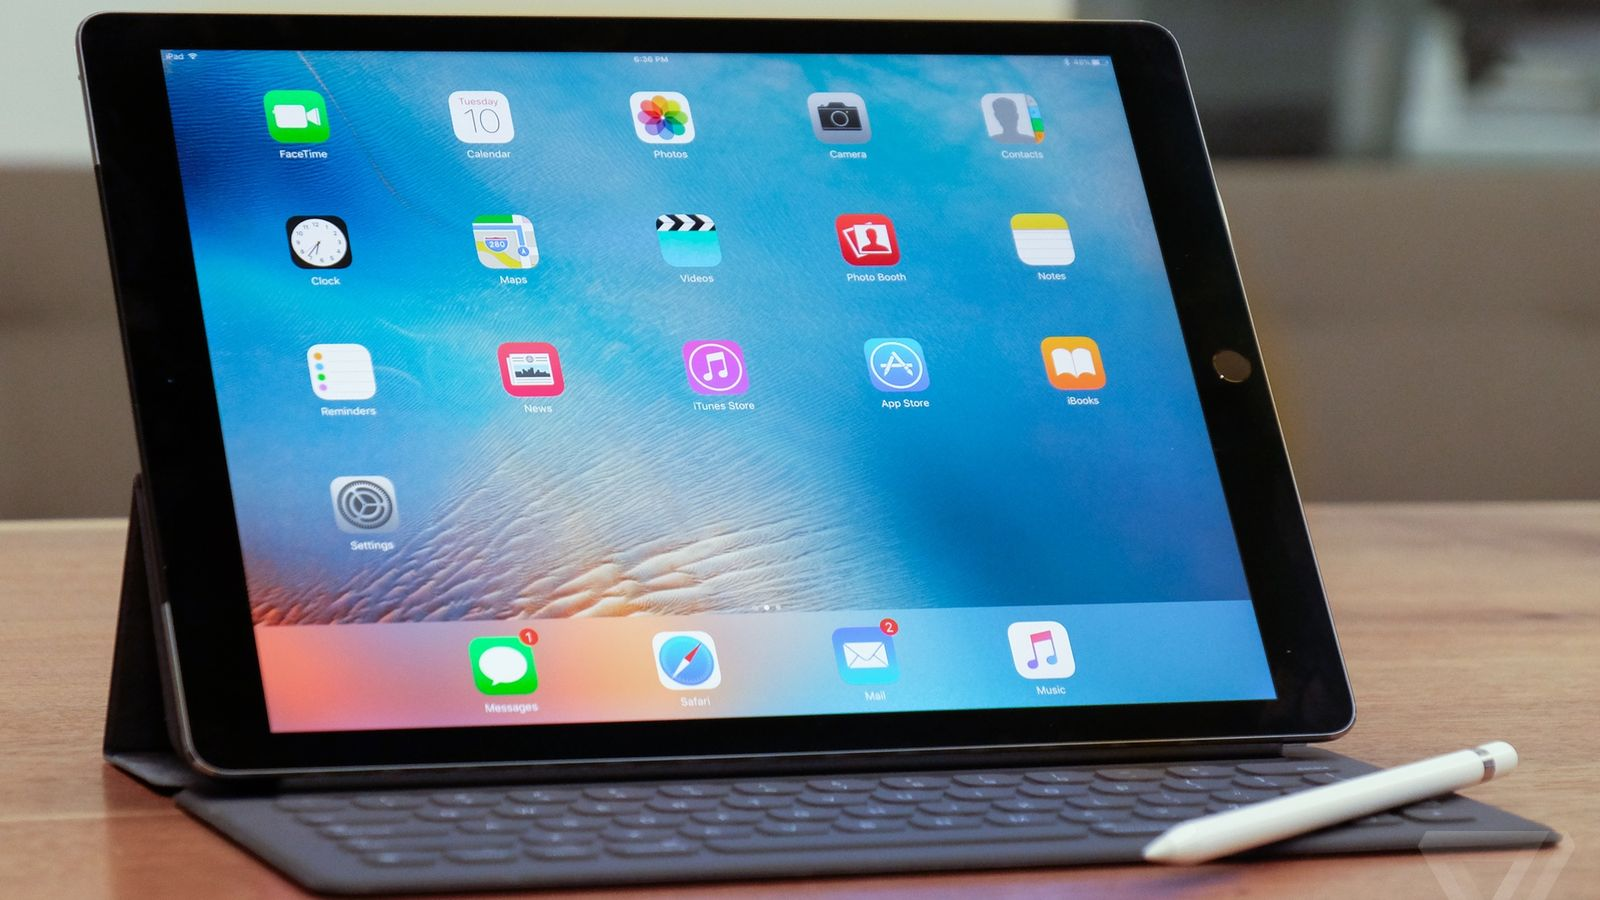 Apple Bytes: How to Access and Manage Files on Your iPad